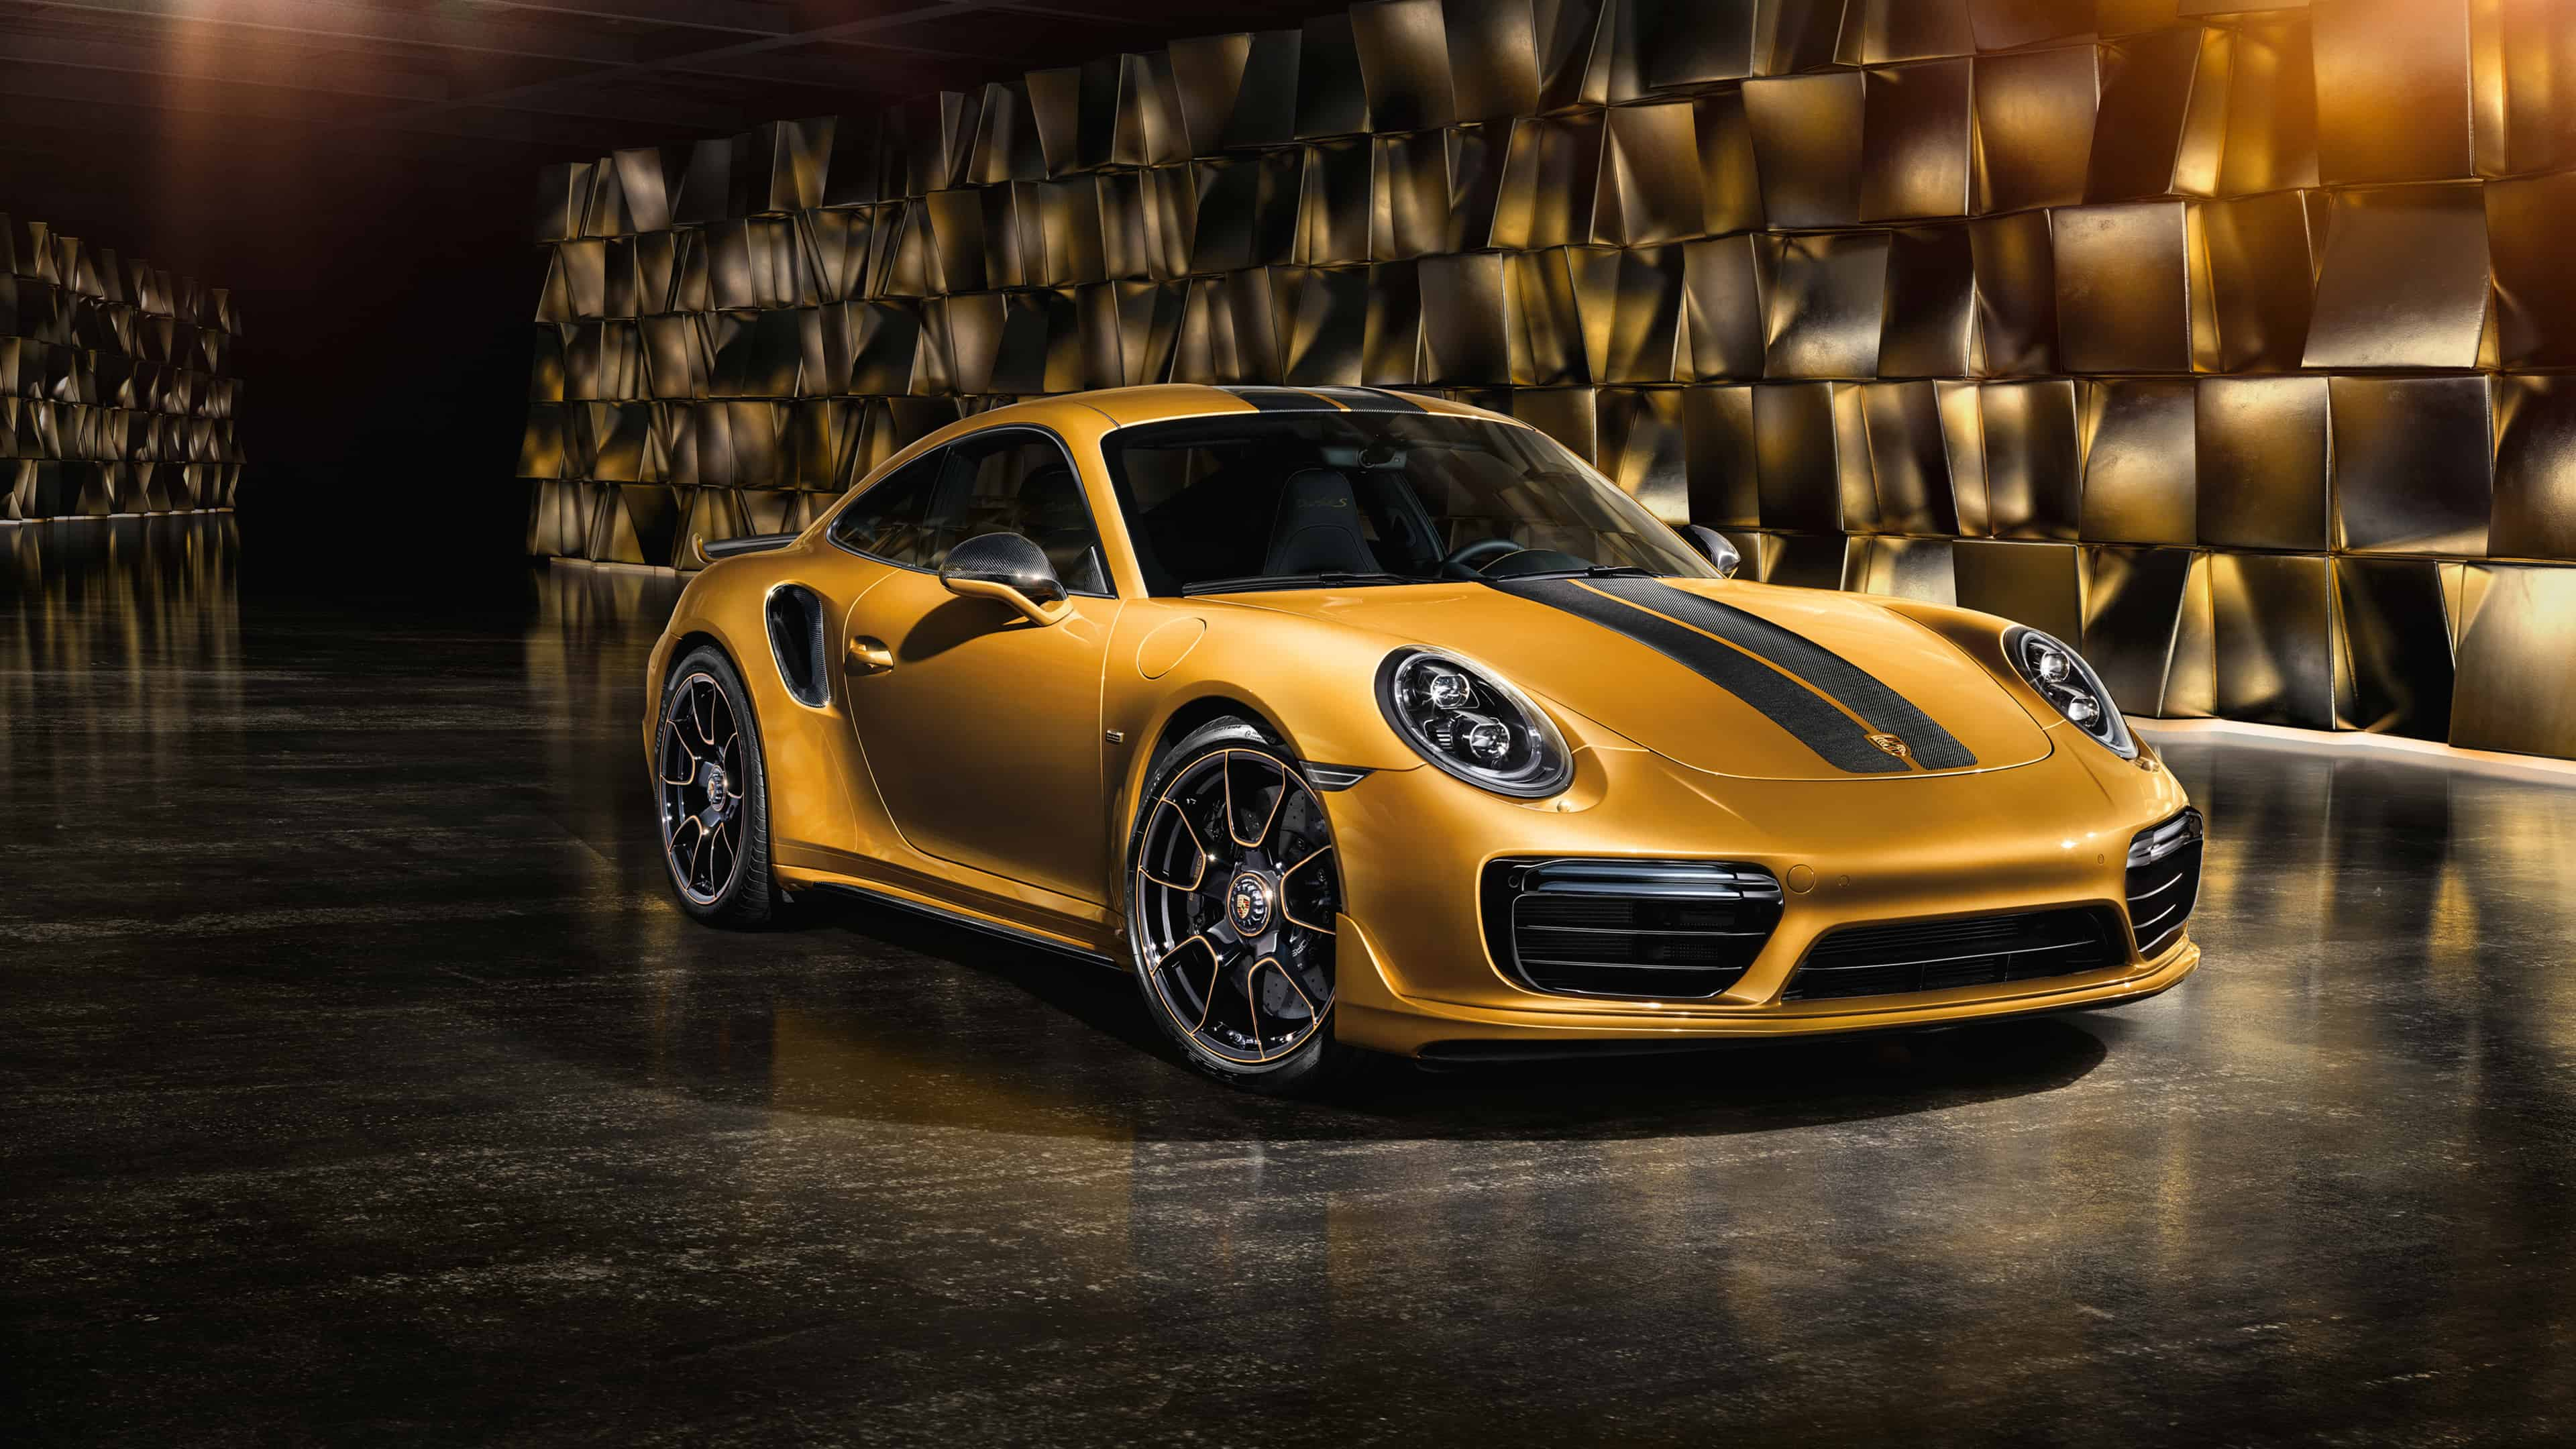 Porsche 911 Turbo S Exclusive Series UHD 4K Wallpaper Pixelz 3840x2160